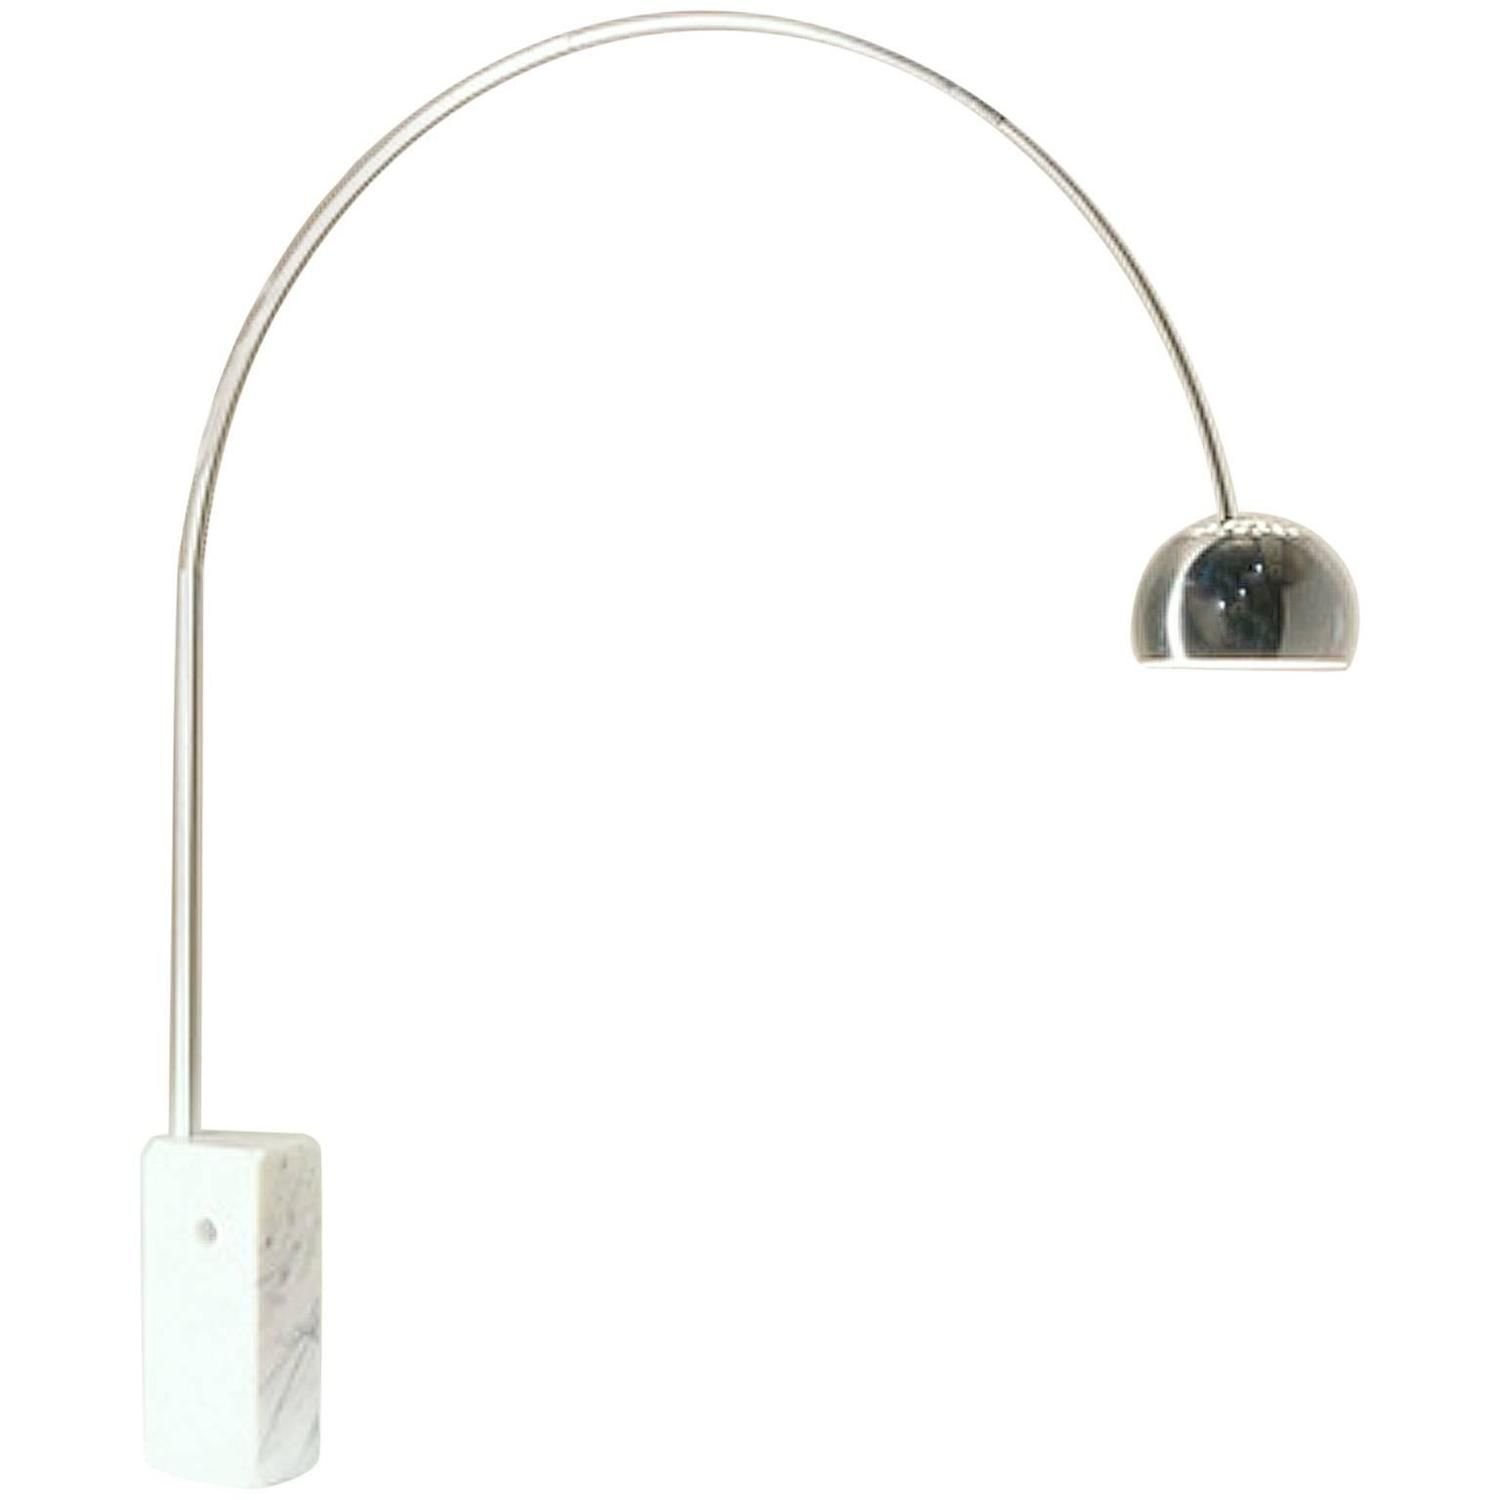 Achille And Pier Giacomo Castiglioni Arco Lamp For Flos 1stdibs Com Arco Lamps Lamp Floor Lamp Lighting